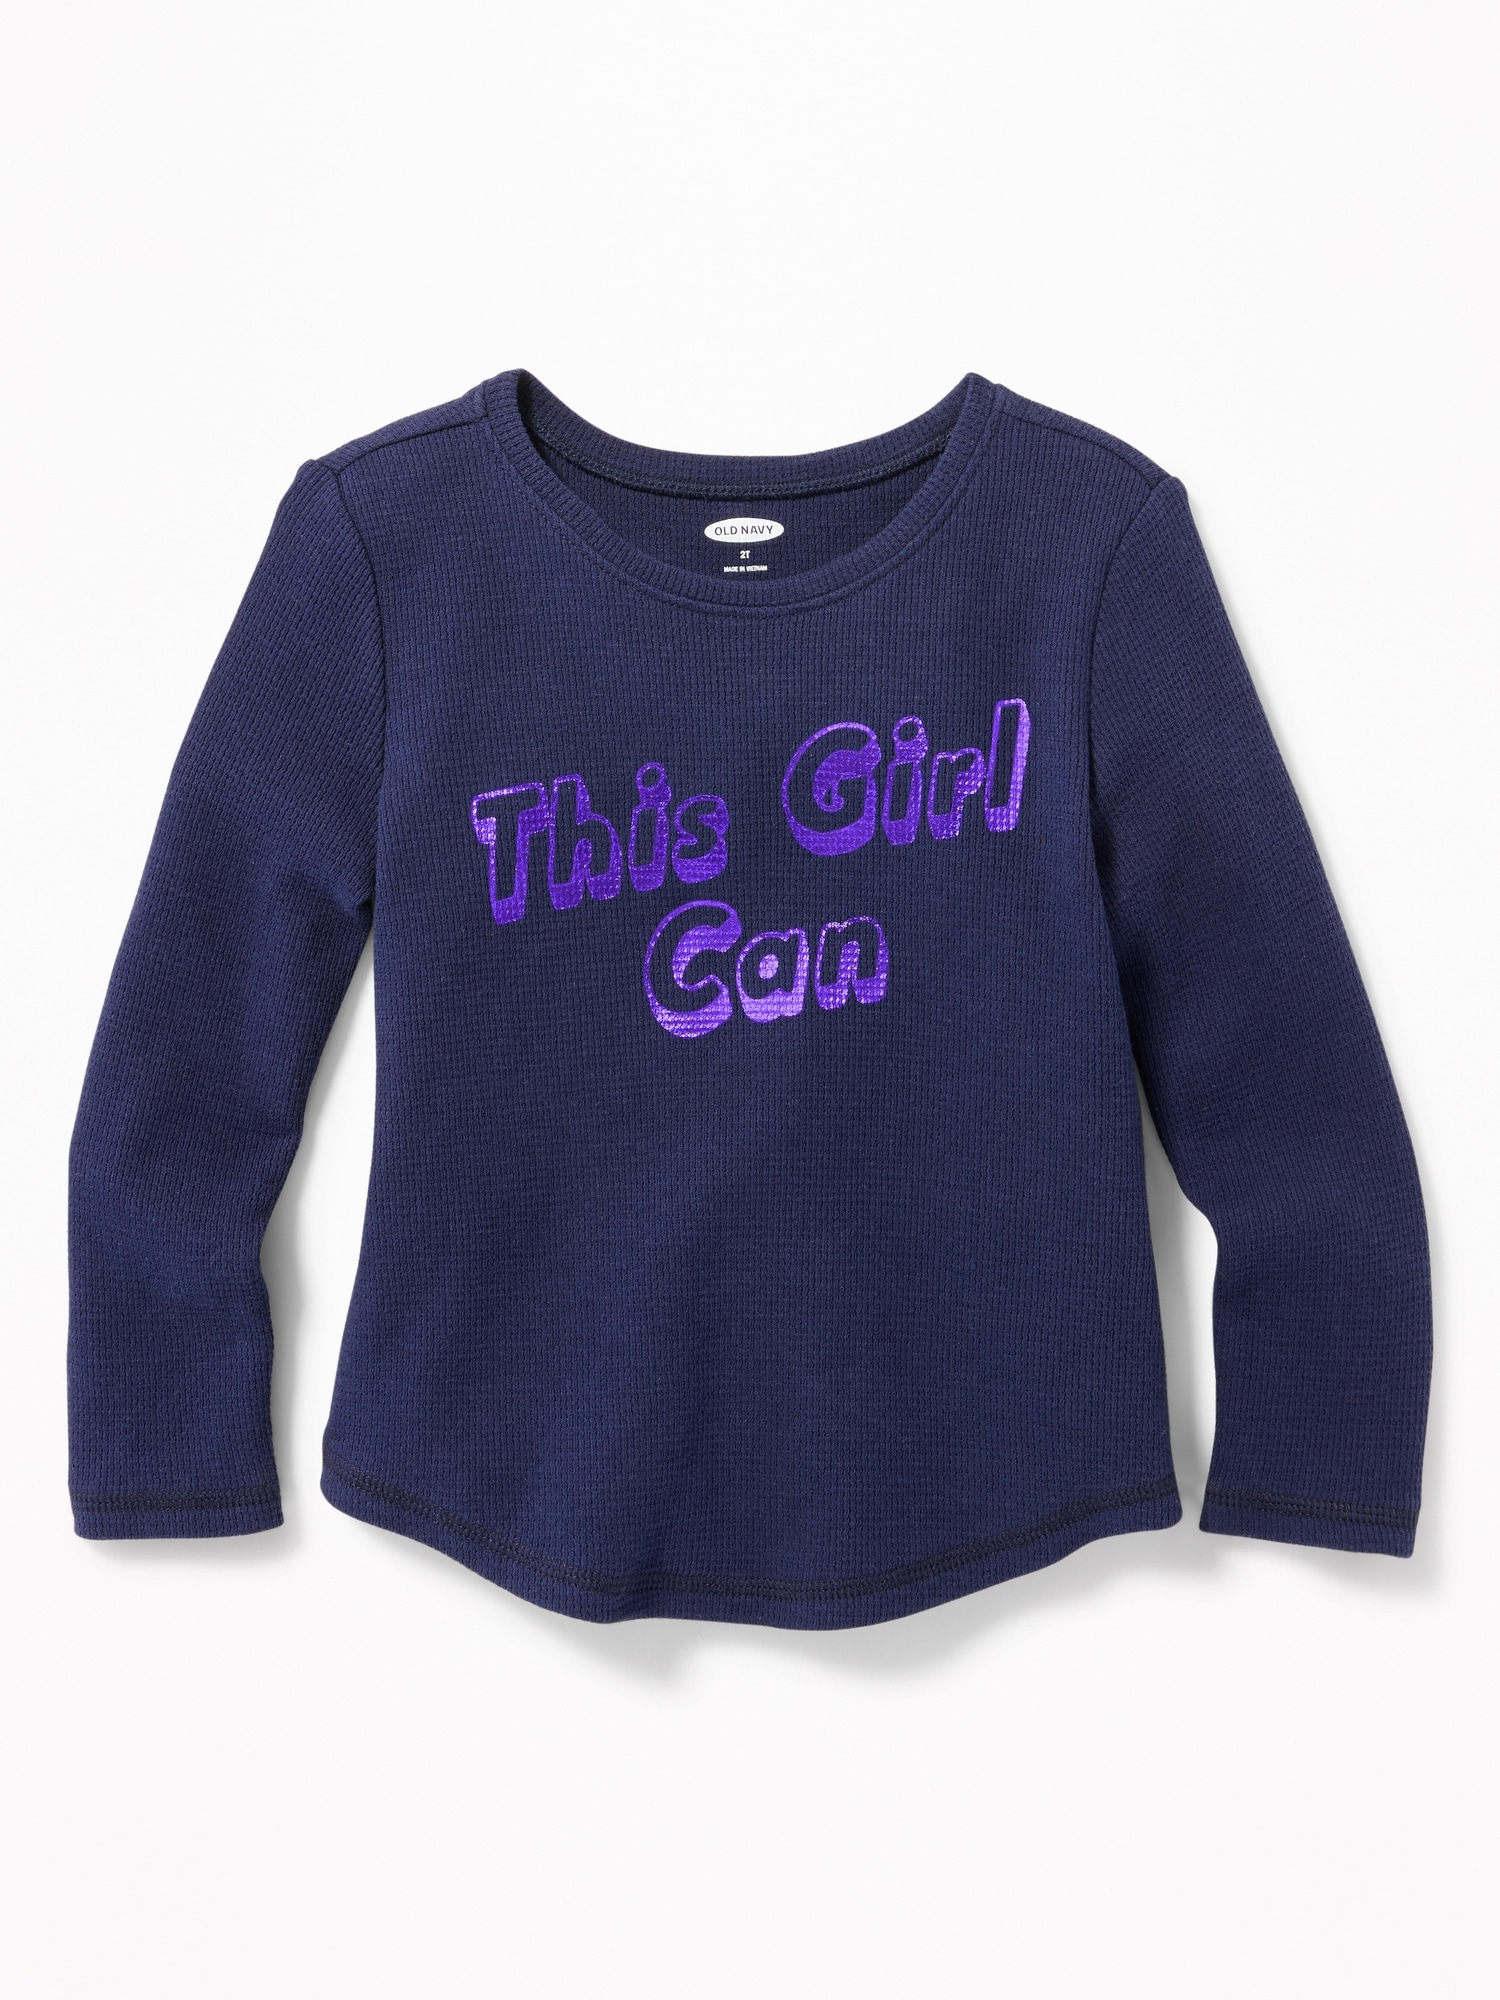 66b1038d4 Printed Thermal-Knit Tee for Toddler Girls